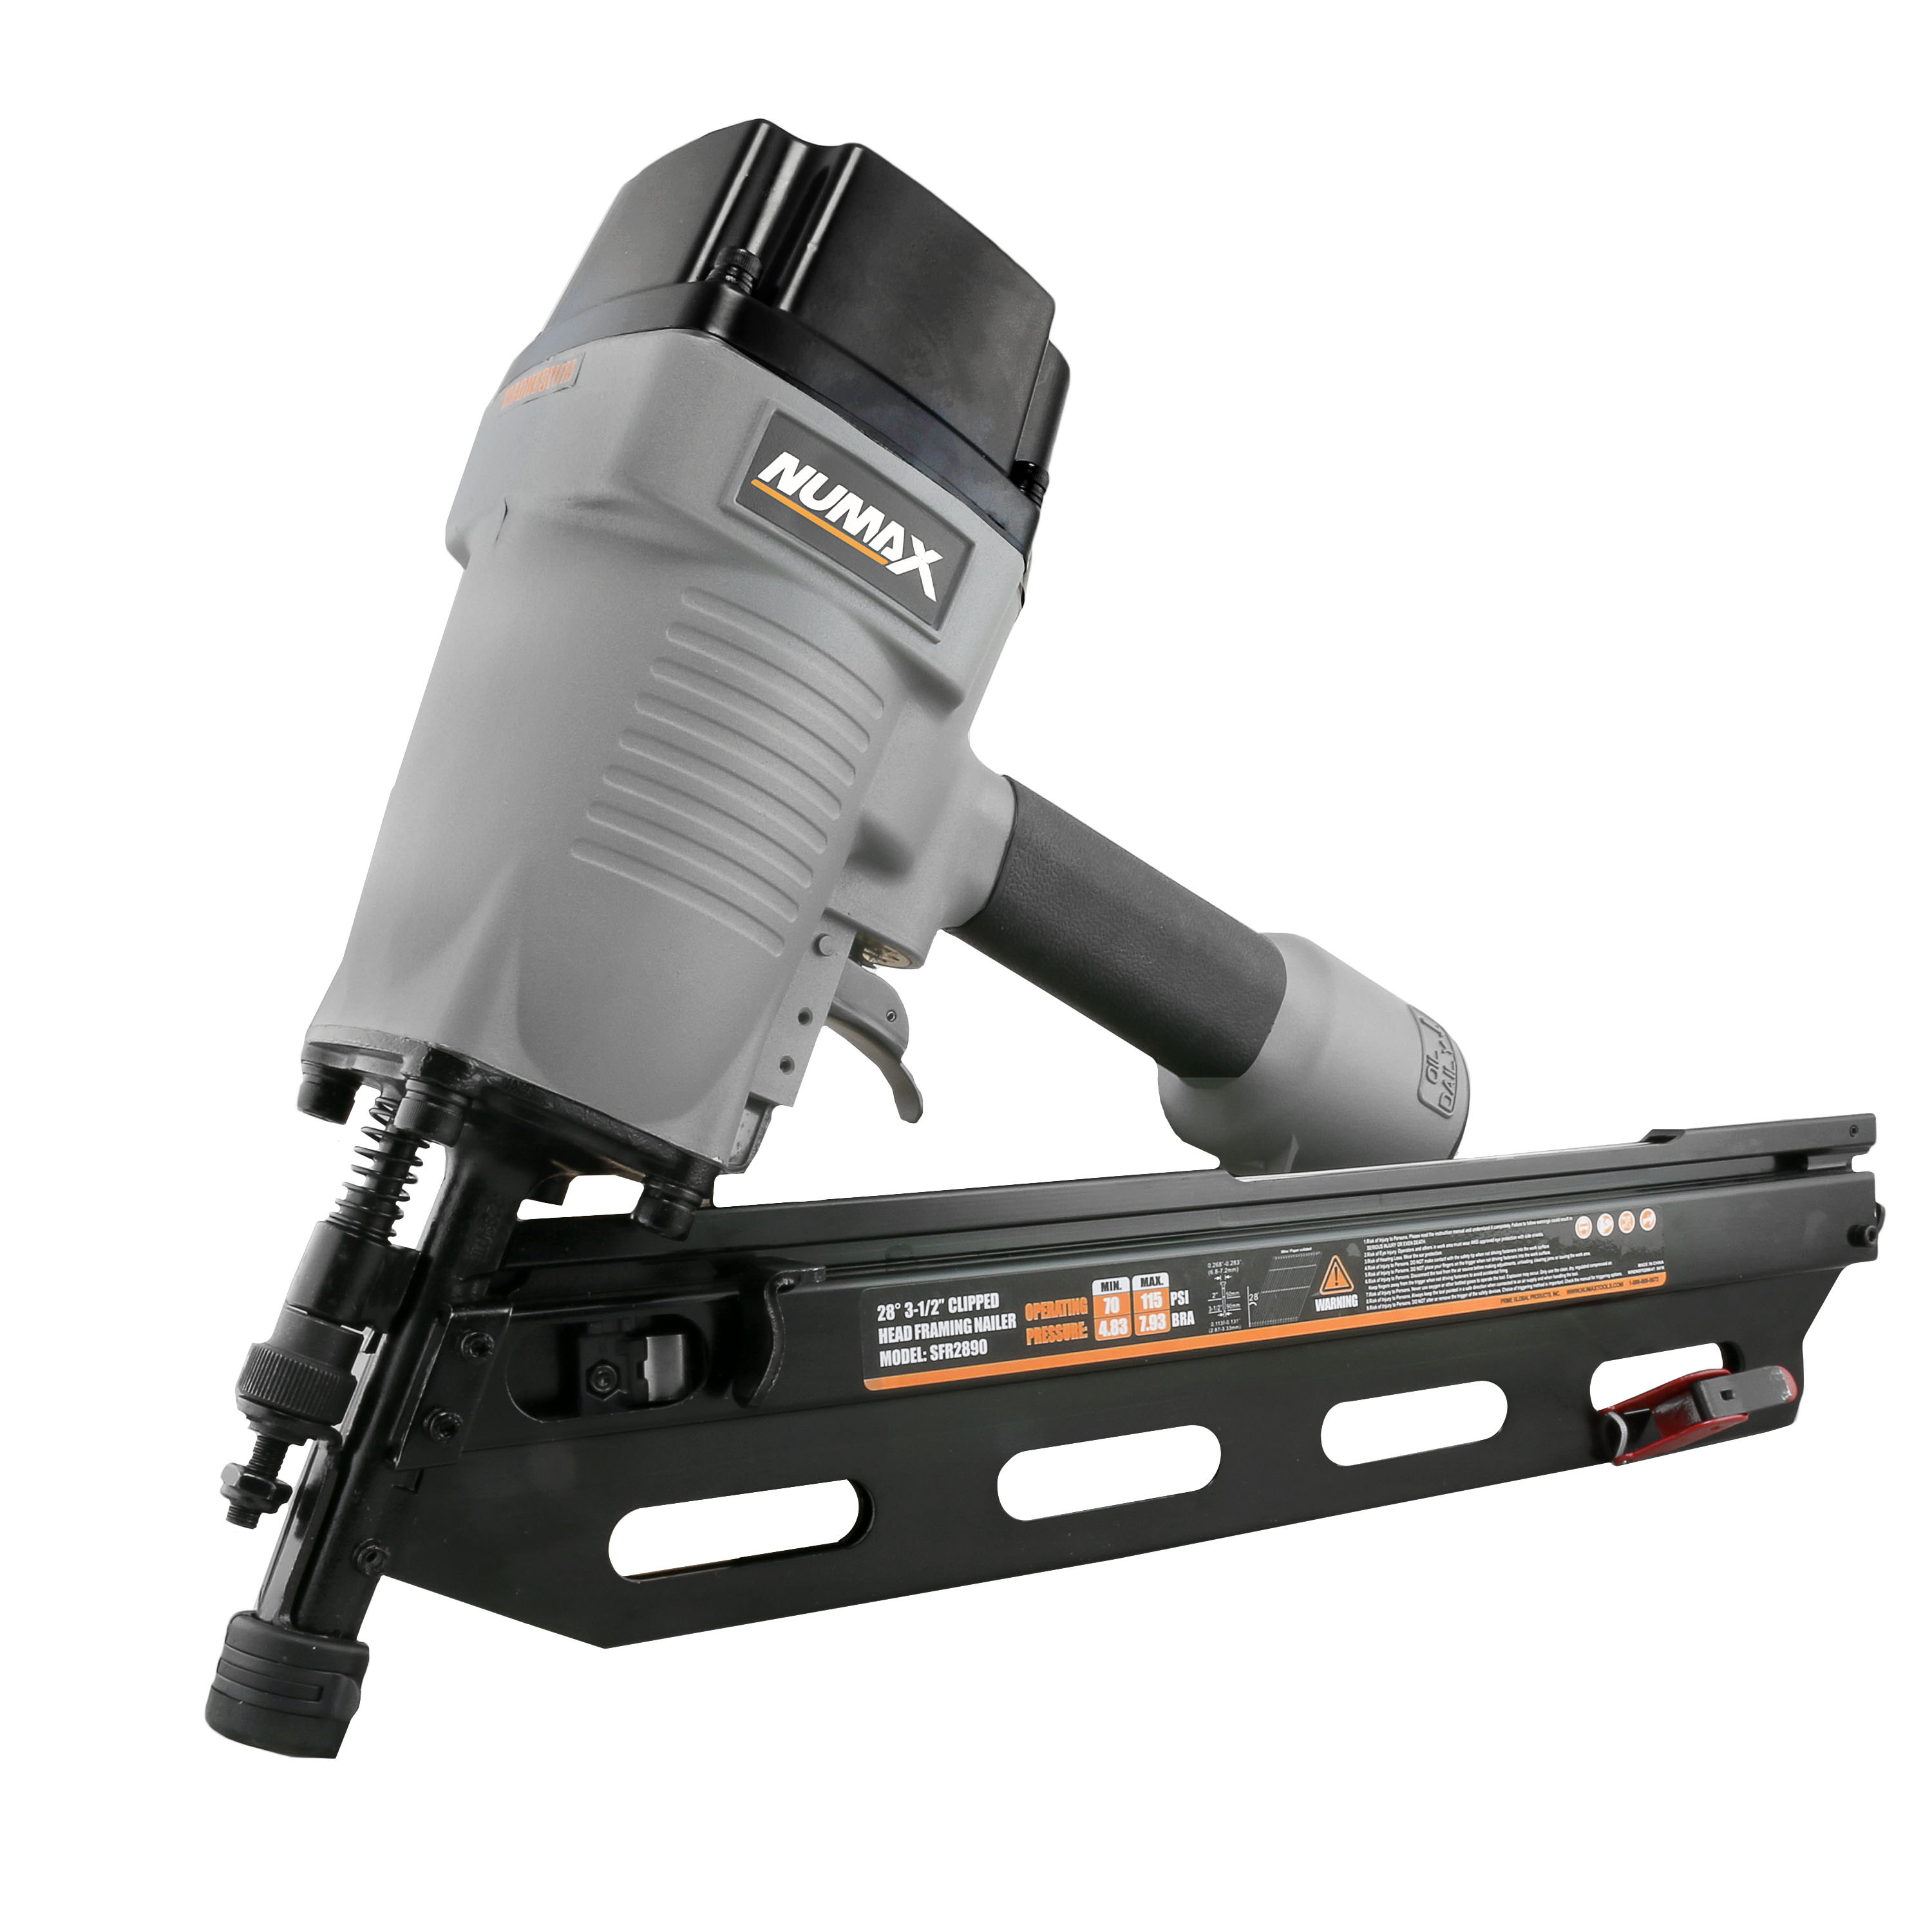 "NuMax SFR2890 Pneumatic 28 Degree 3-1/2"" Framing Nailer"